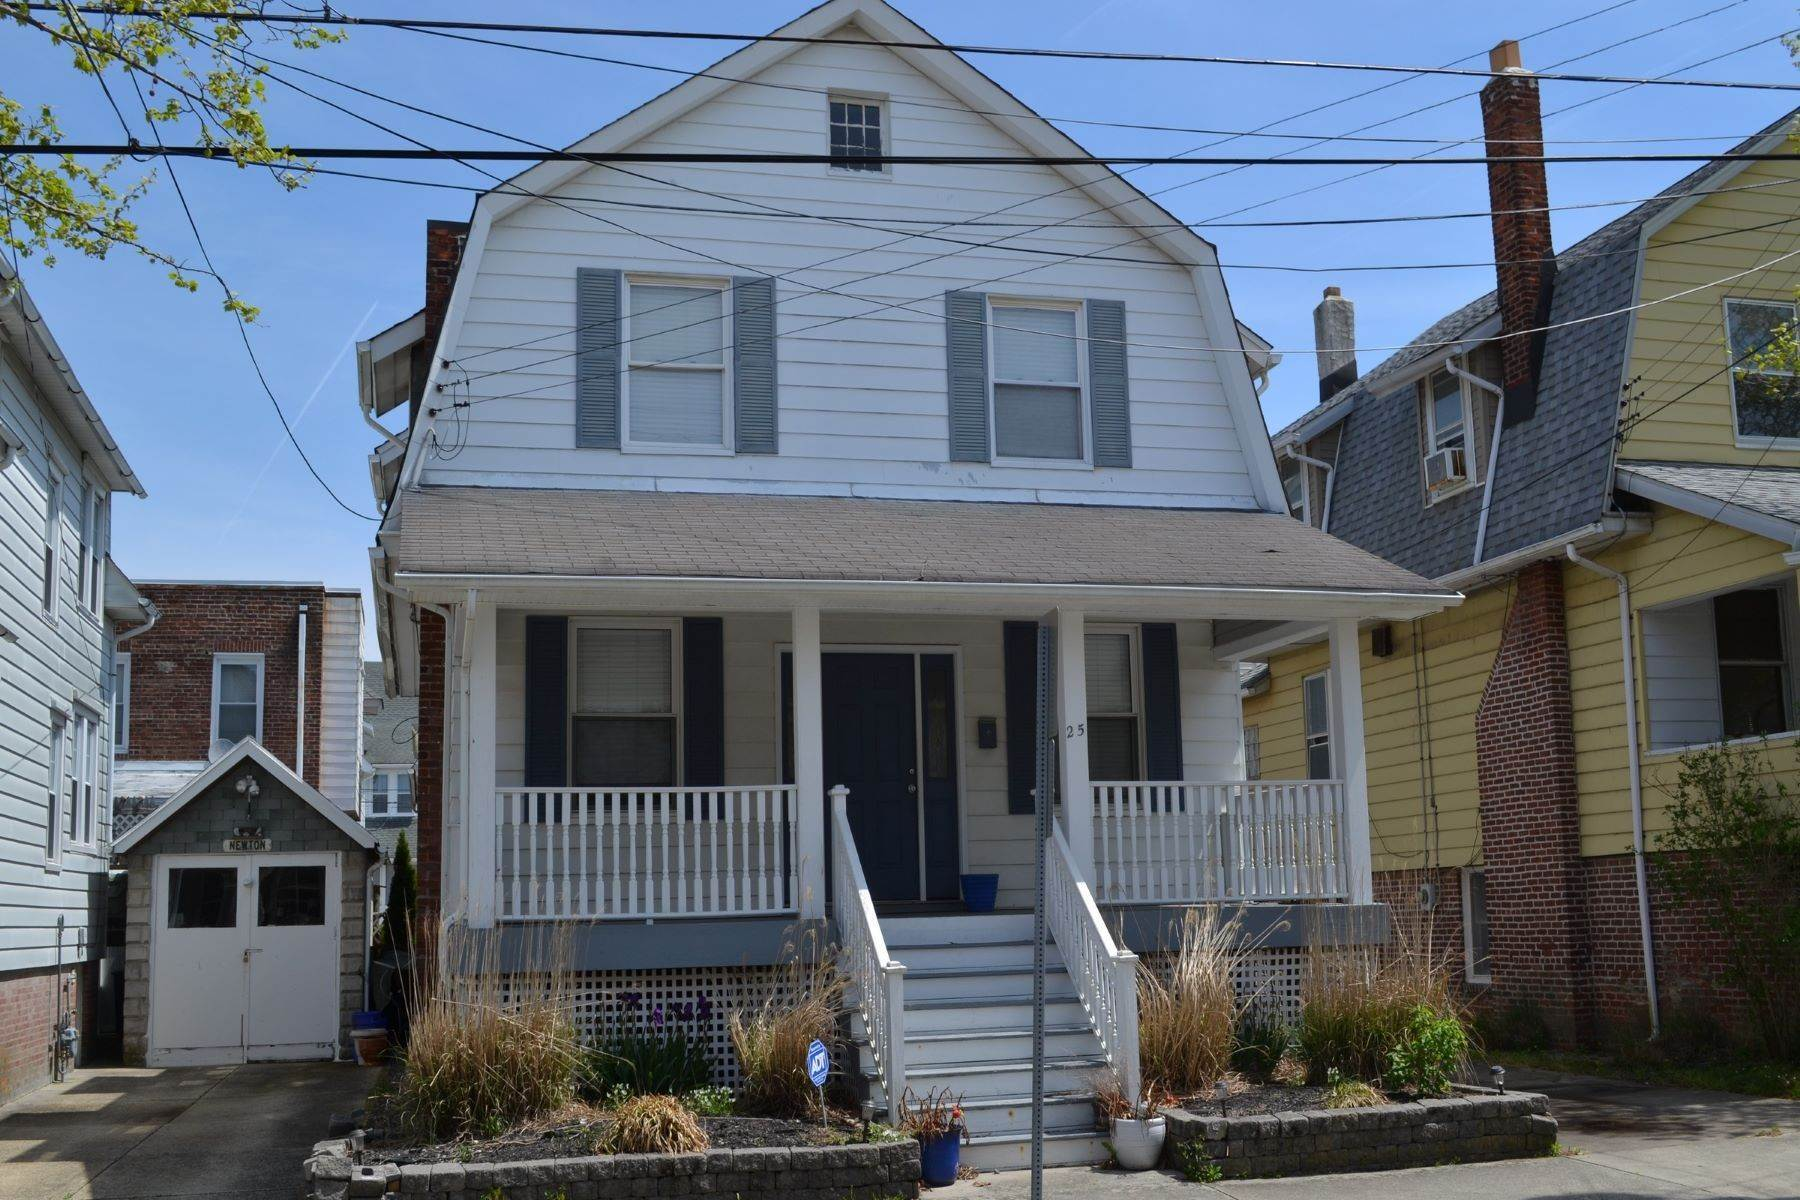 Single Family Homes at 25 N Newton Ave, Full Summer Atlantic City, New Jersey 08401 United States